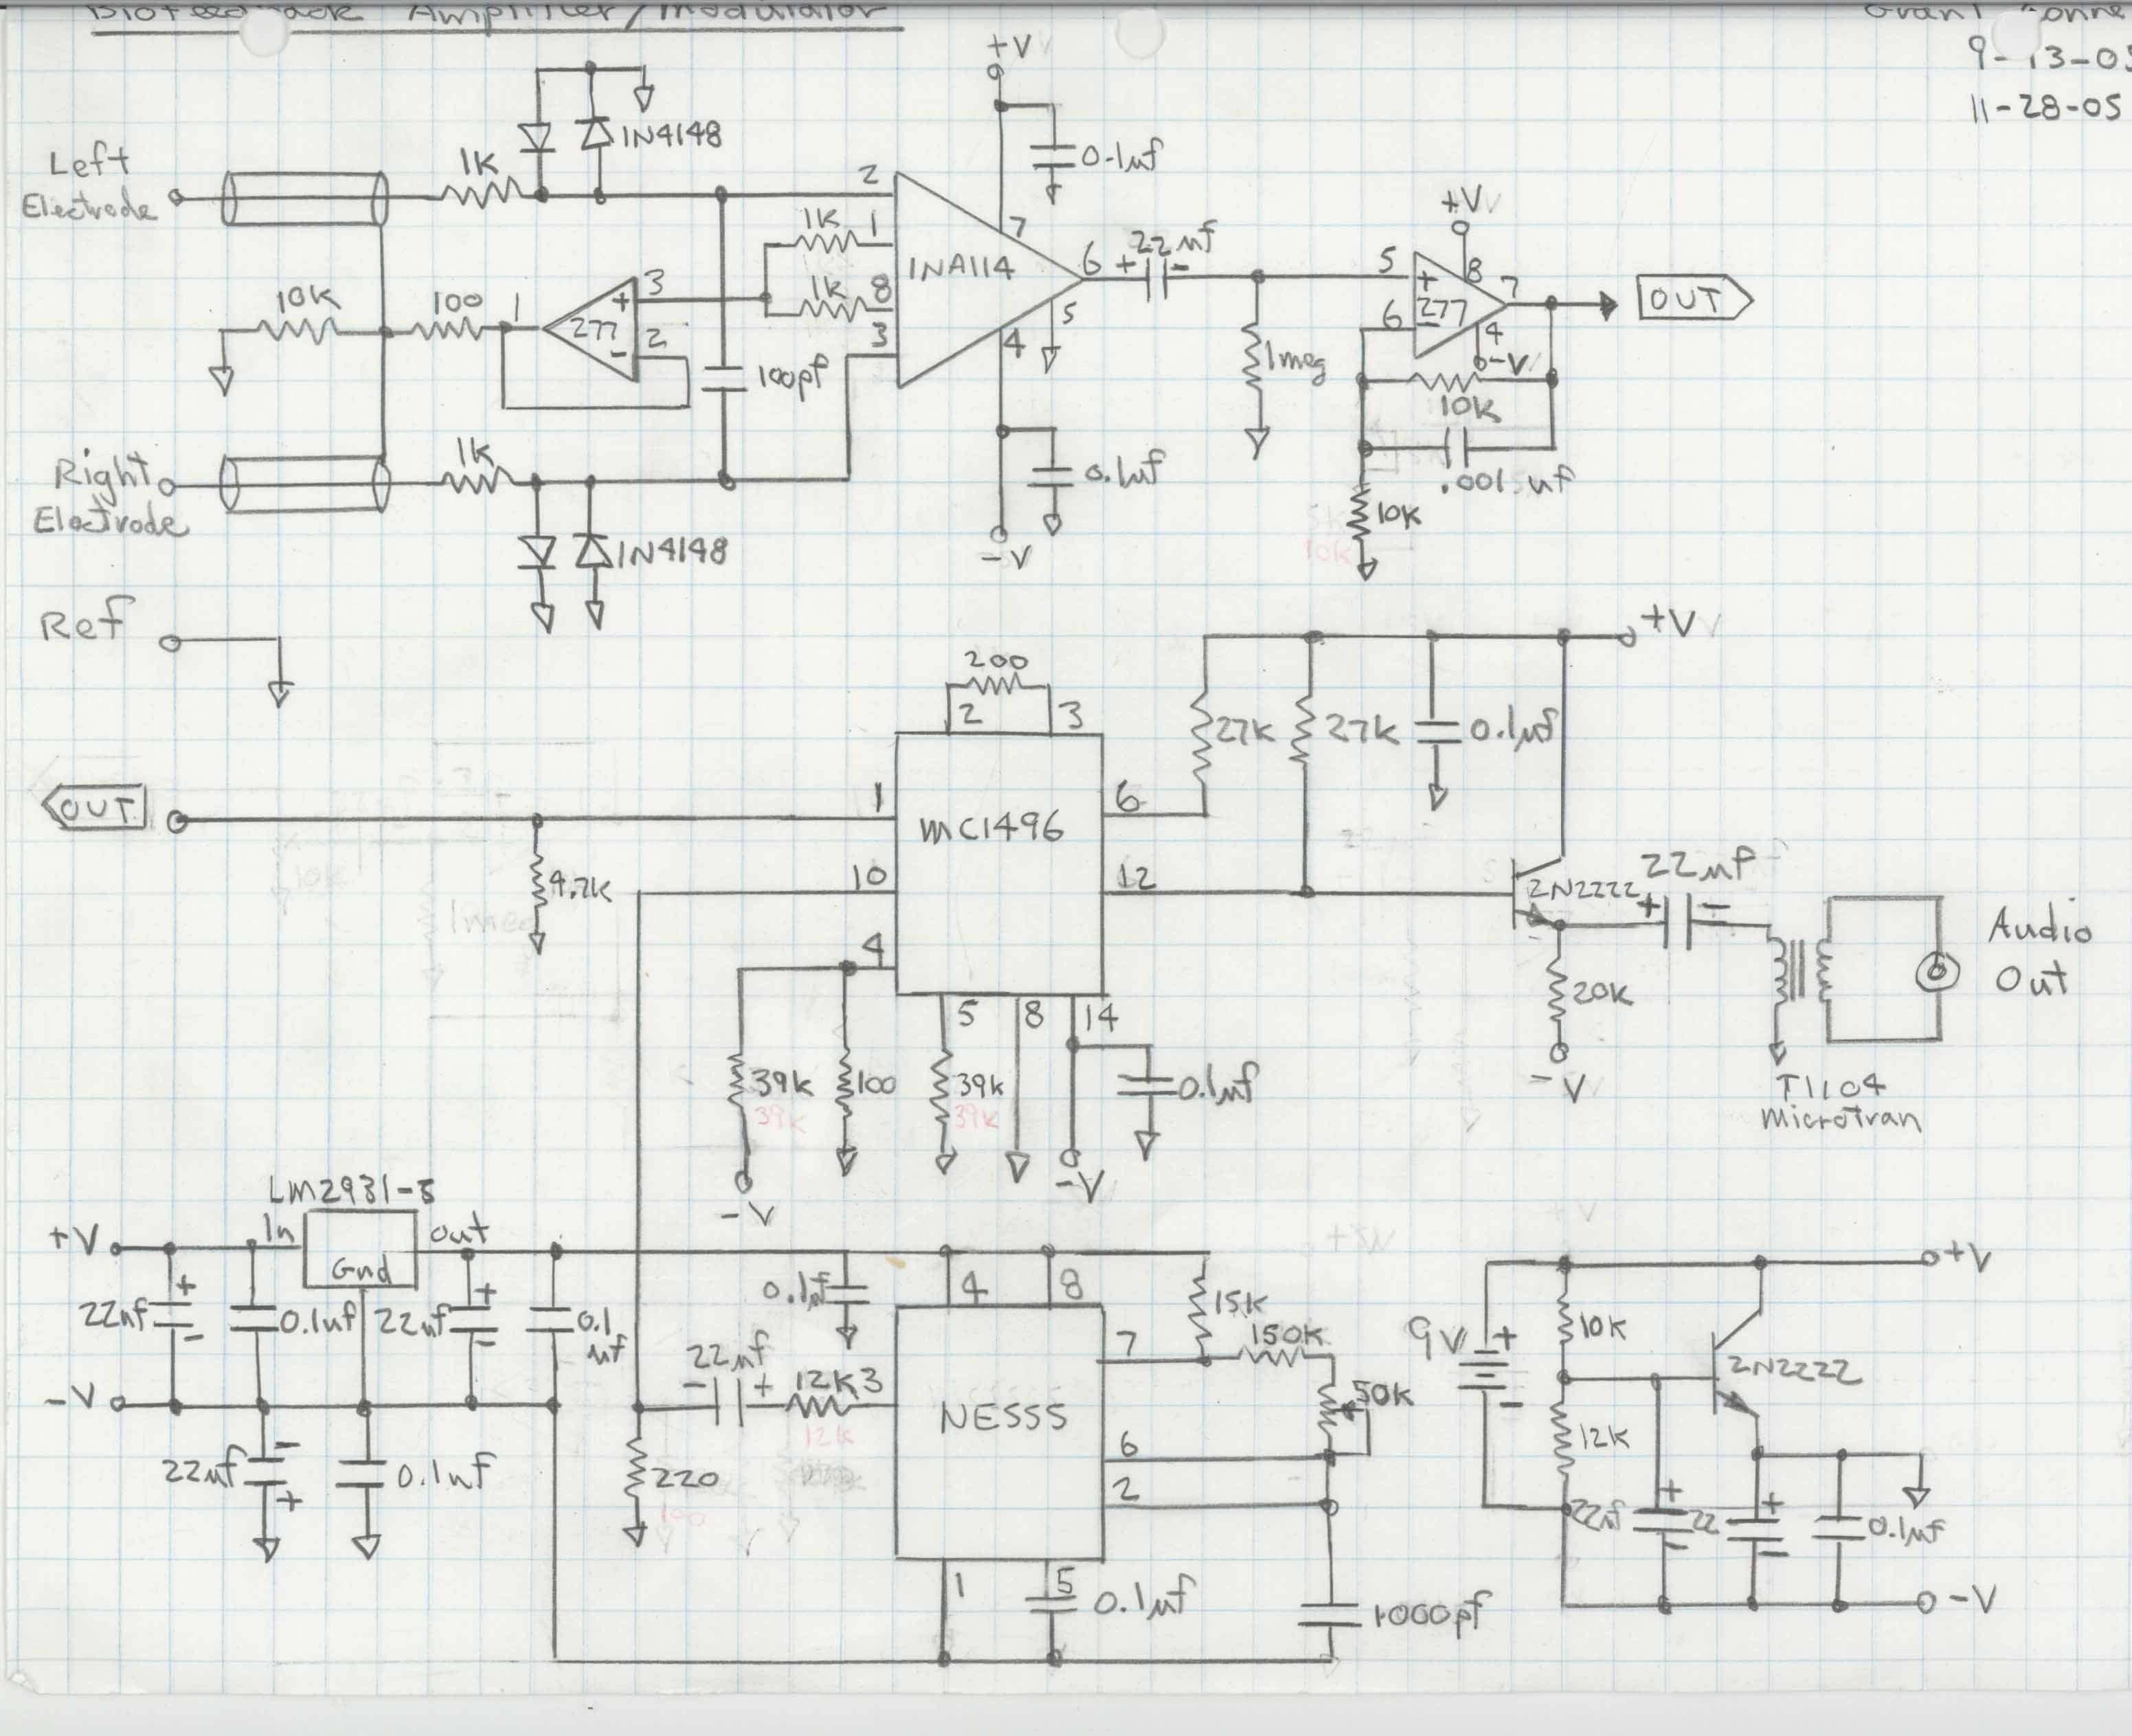 Soundcardeeg Sceeg Prototype Eeg Schematic The Fm Unit Can Be Downloaded From Sheet 1 And 2 Software For Prototypes Probe Install